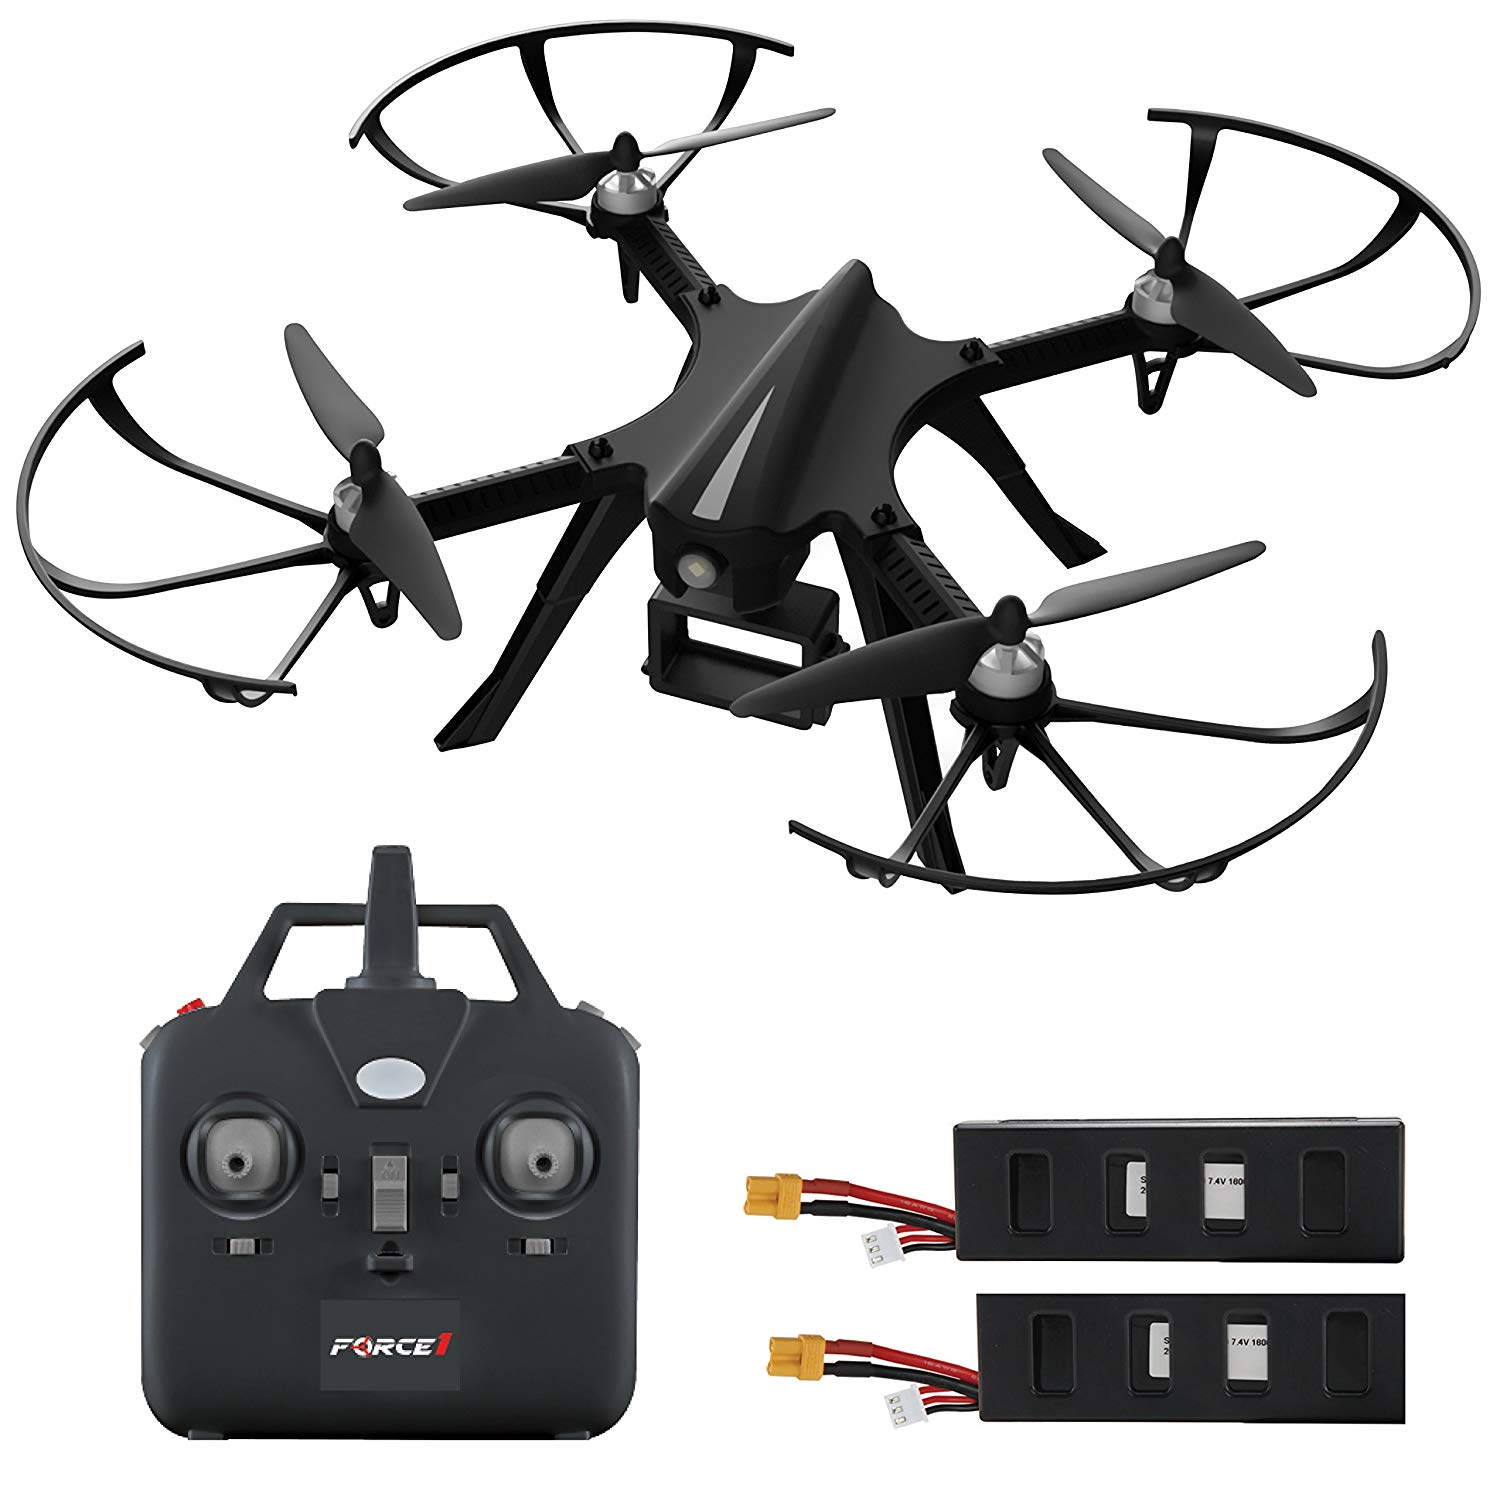 Force1 F100 Brushless Drone